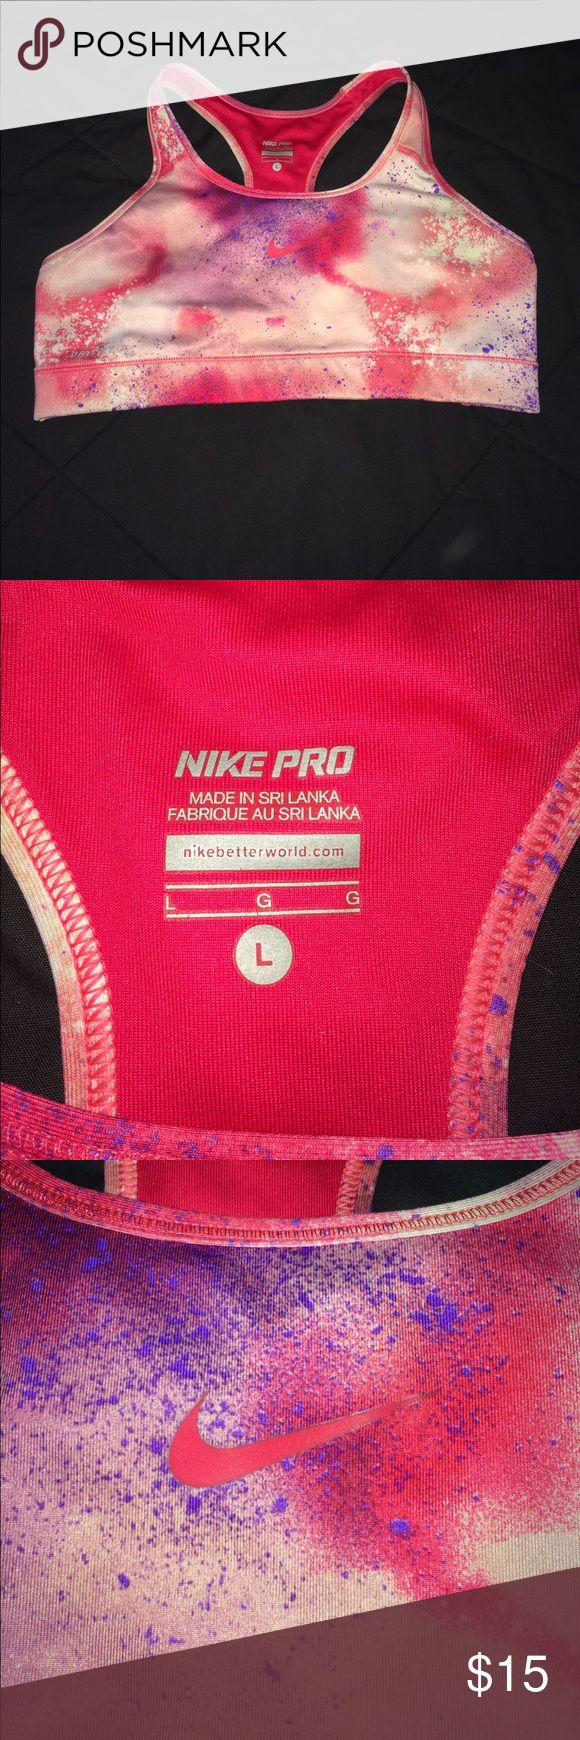 Nike large dri-fit sports bra NEW colorful pinks Nike large dri-fit sports bra NEW colorful pinks Nike Intimates & Sleepwear Bras